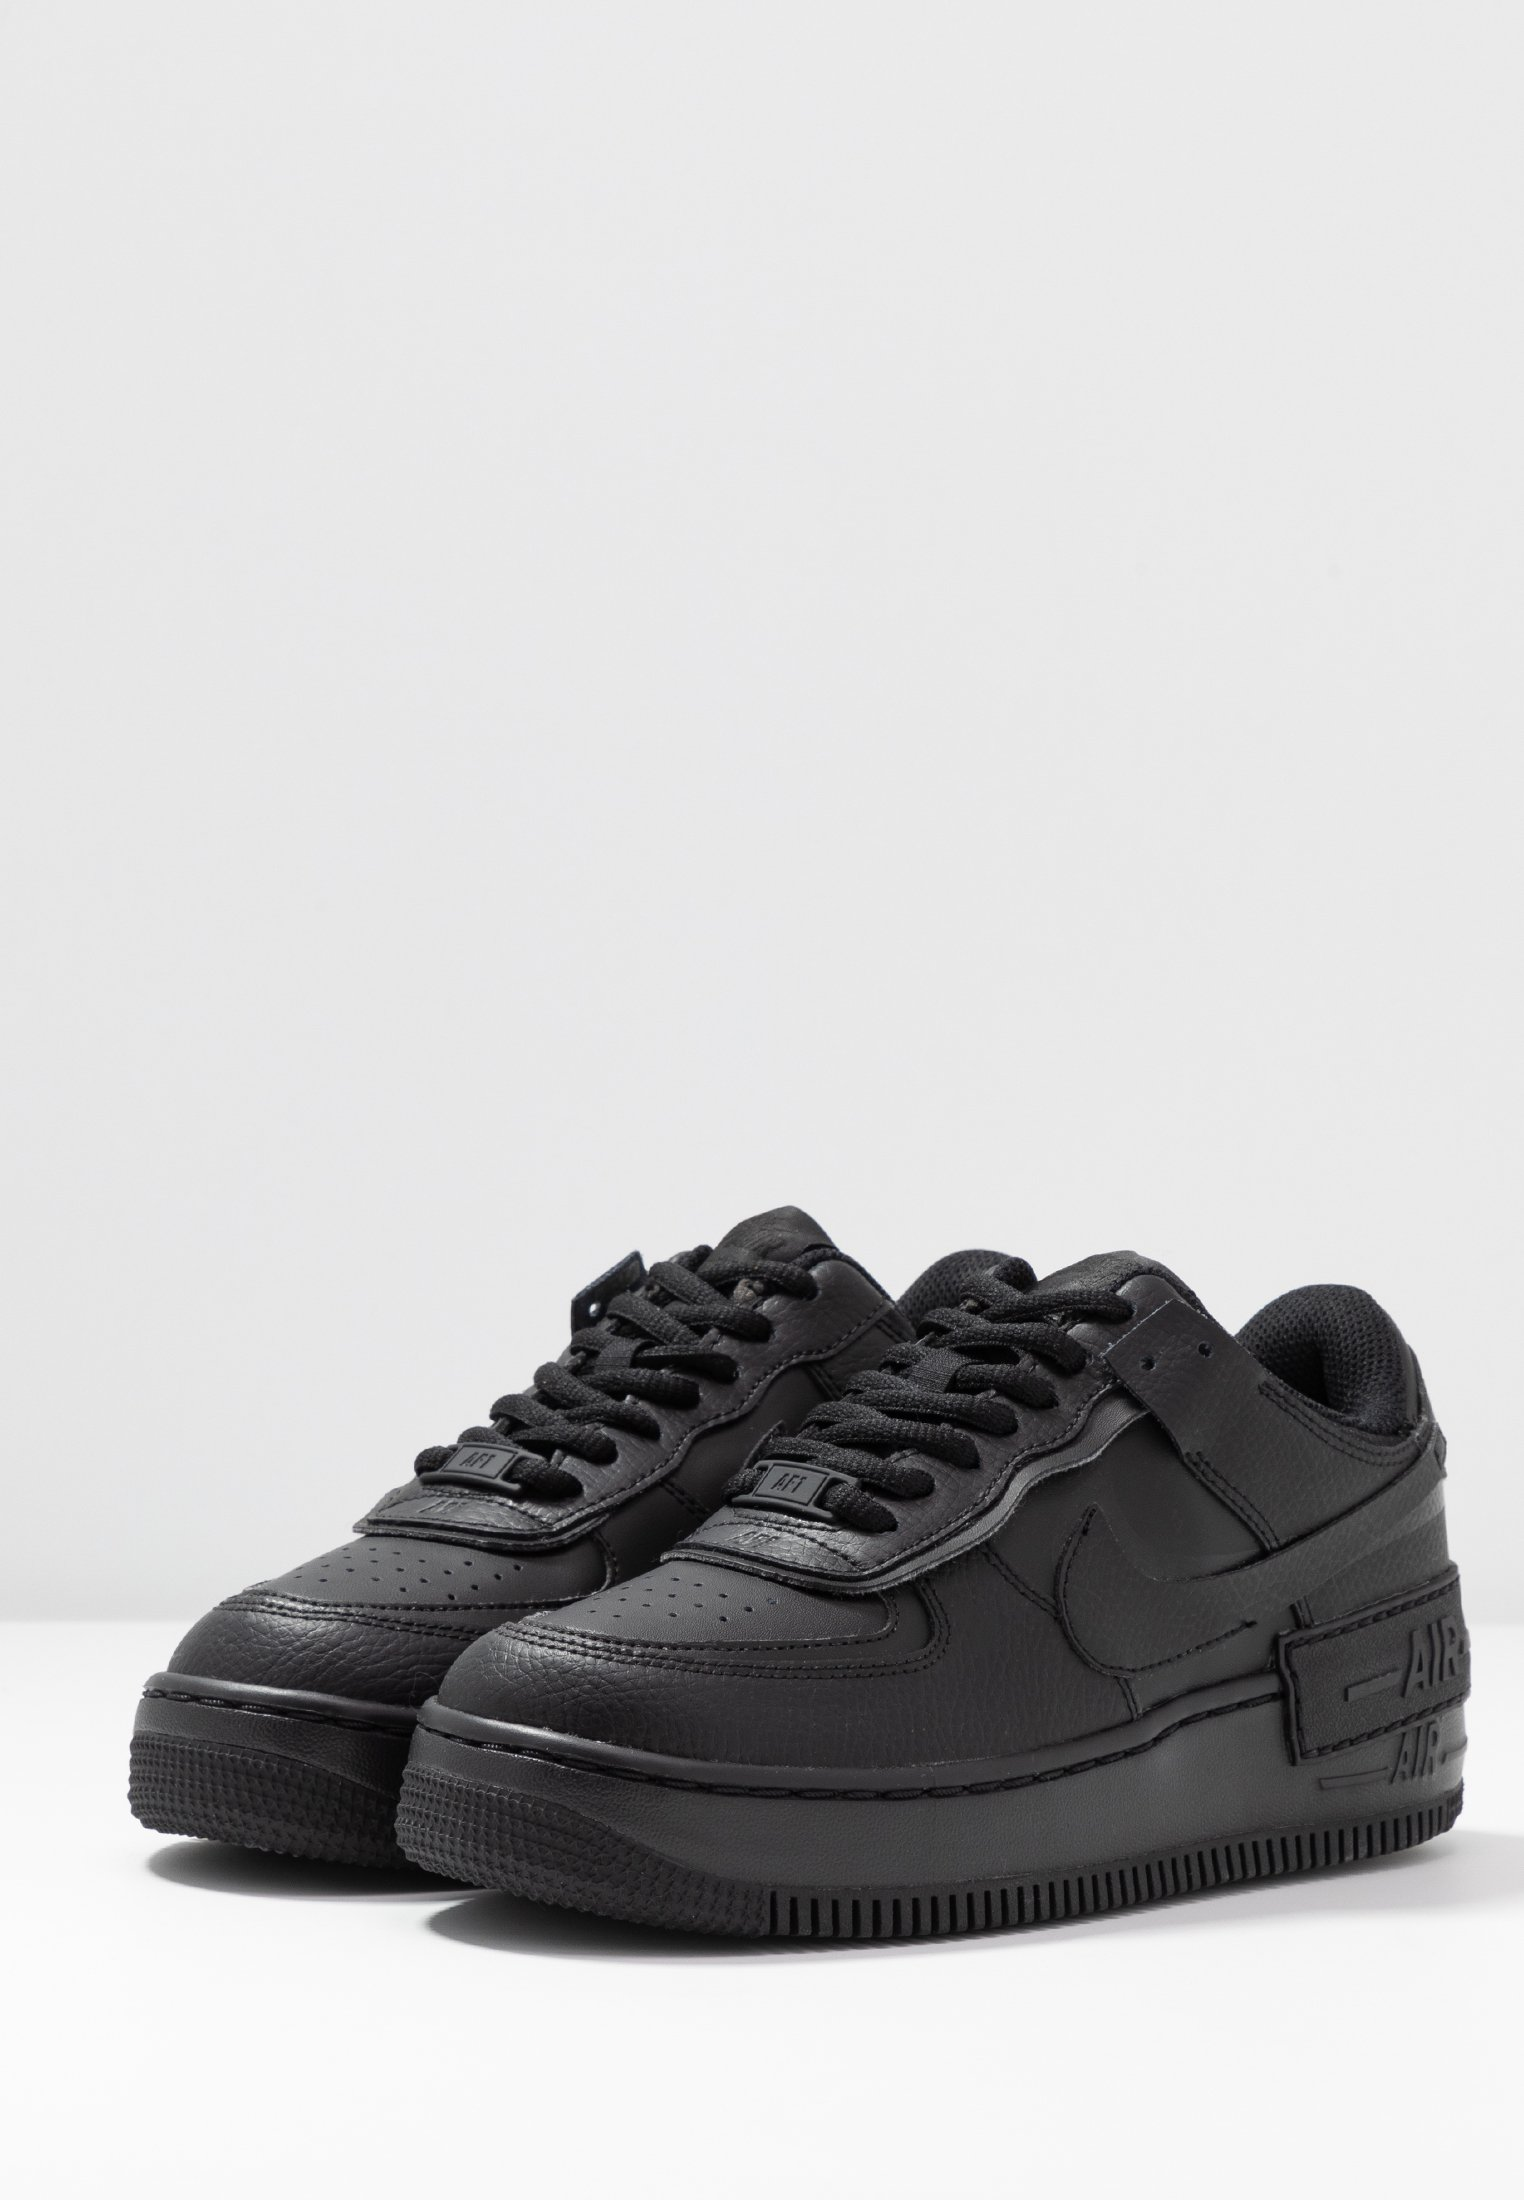 air force 1 hombre shadow